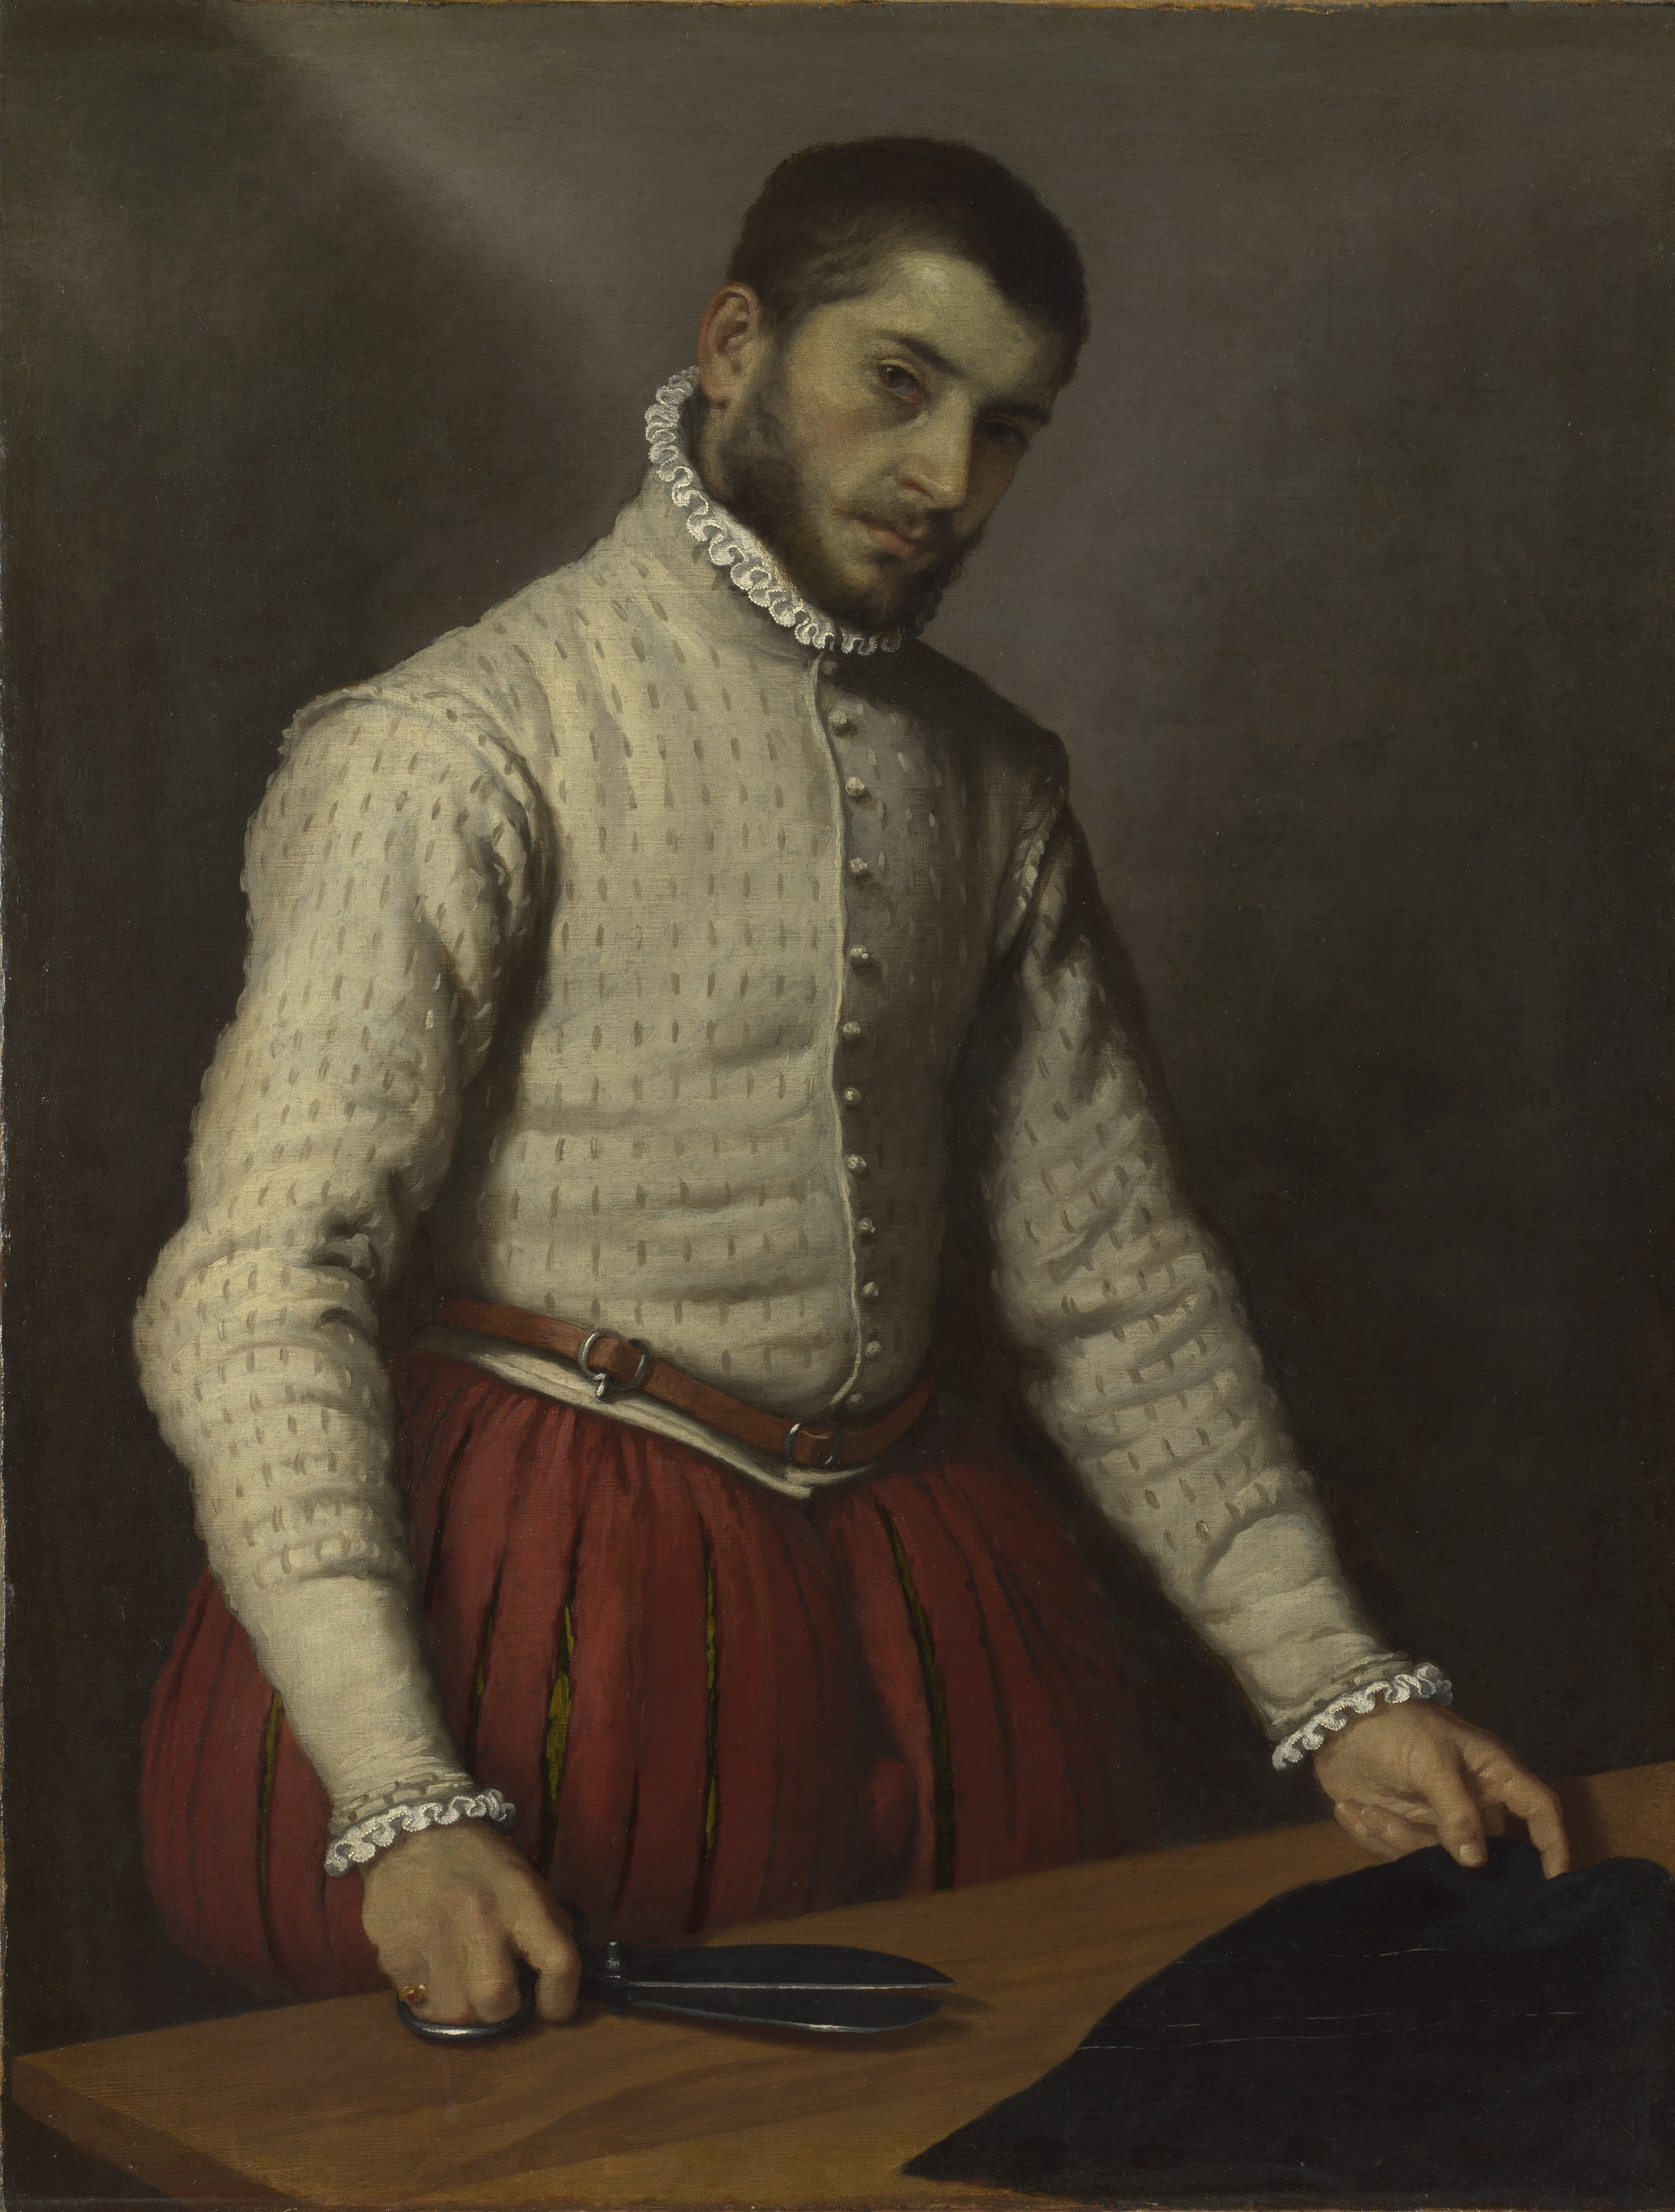 Giovanni Battista Moroni The Tailor, 1565-70 Oil on canvas, 99.5 x 77 cm The National Gallery, London Photo © The National Gallery, London